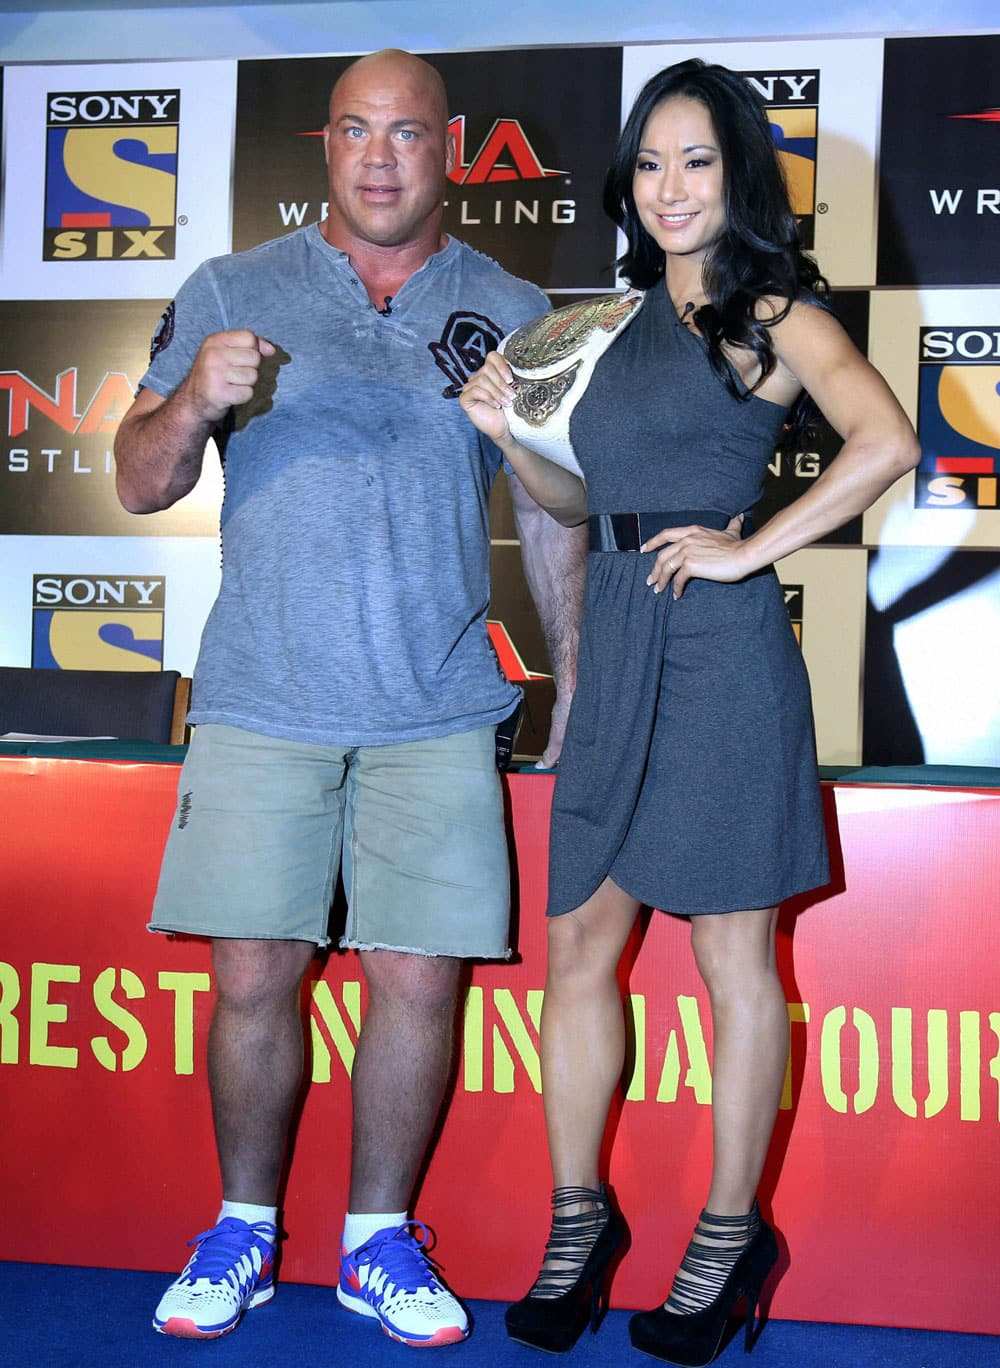 International wrestler and olympic gold medalist Kurt Angle alongwith woman wrestler Gail Kim during a promotional event in Mumbai.